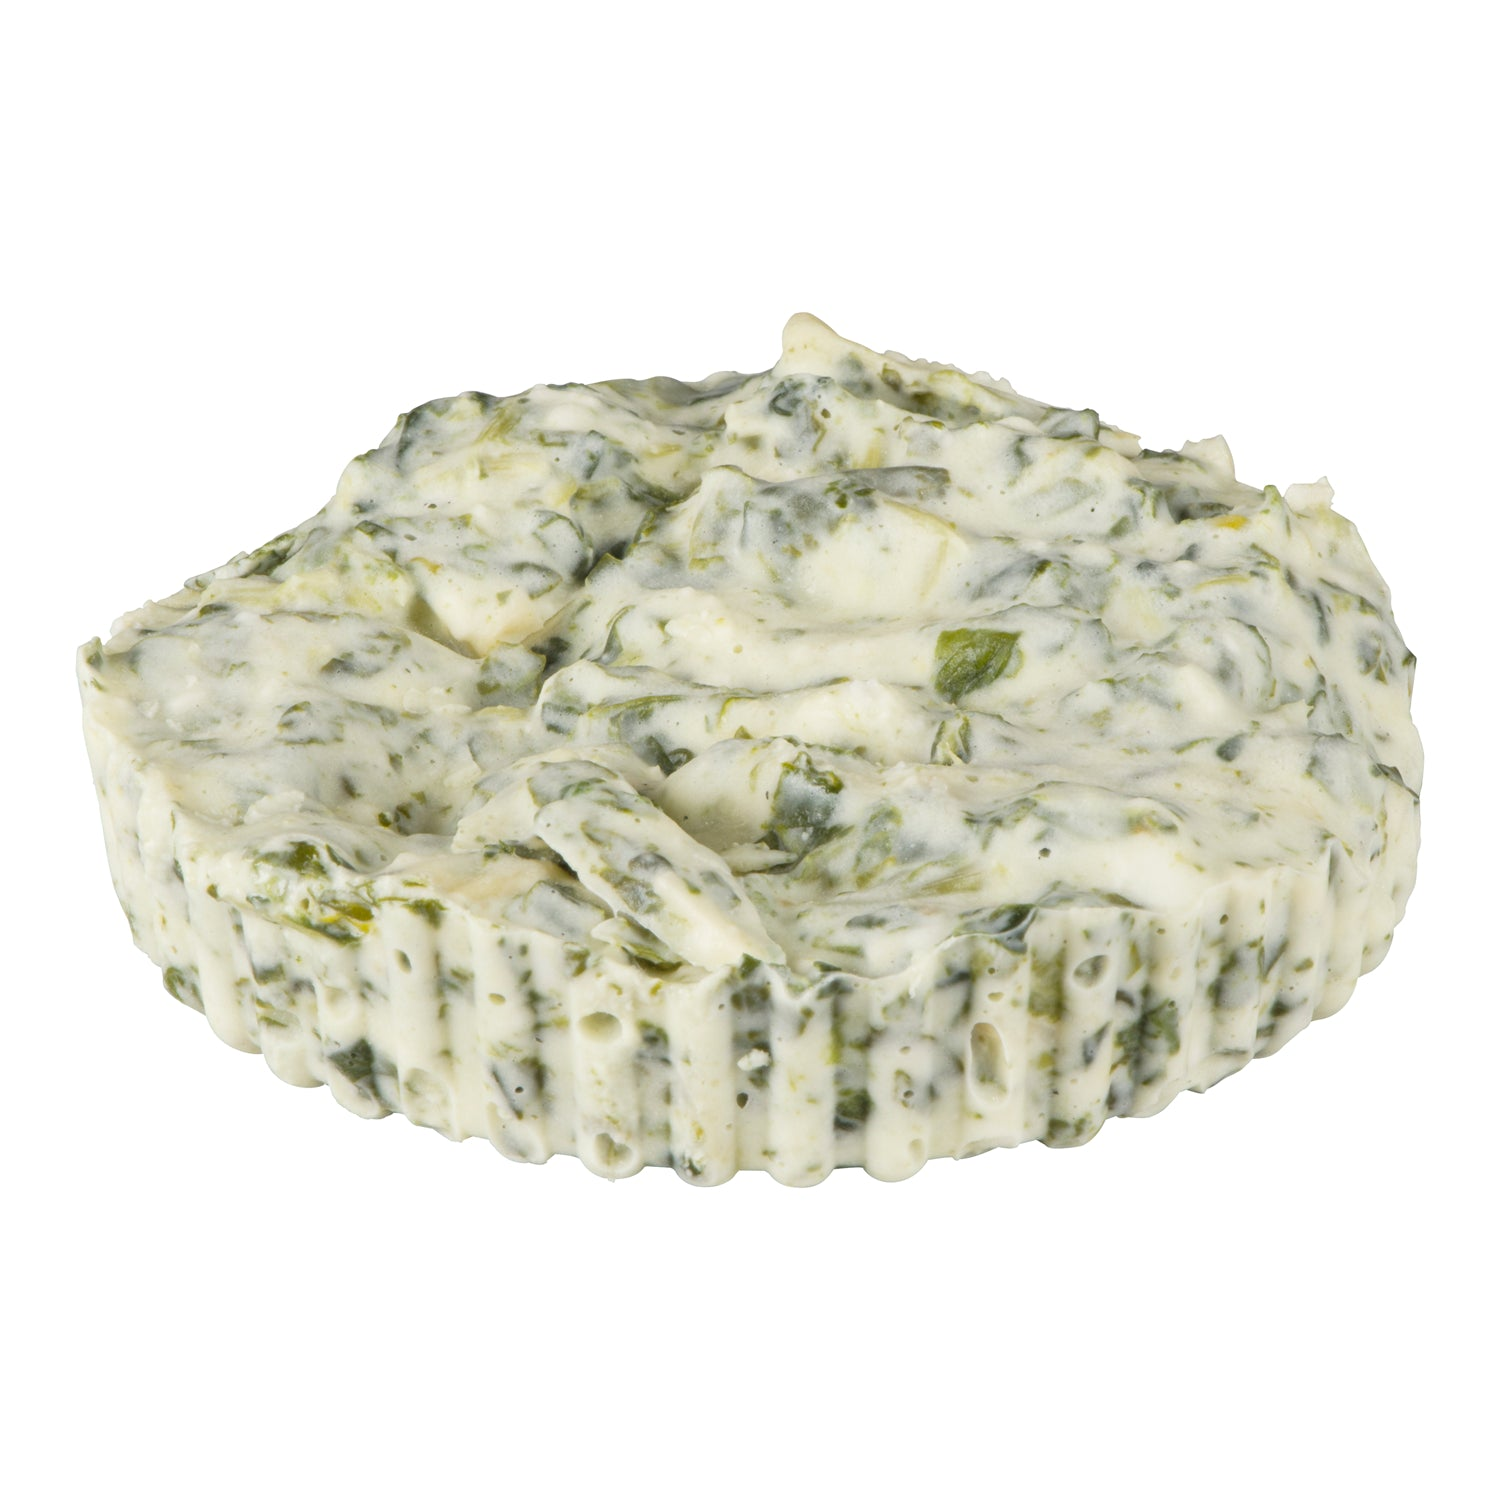 Sysco Imperial Frozen Spinach and Artichoke Dip 6 oz - 36 Pack [$3.44/each]